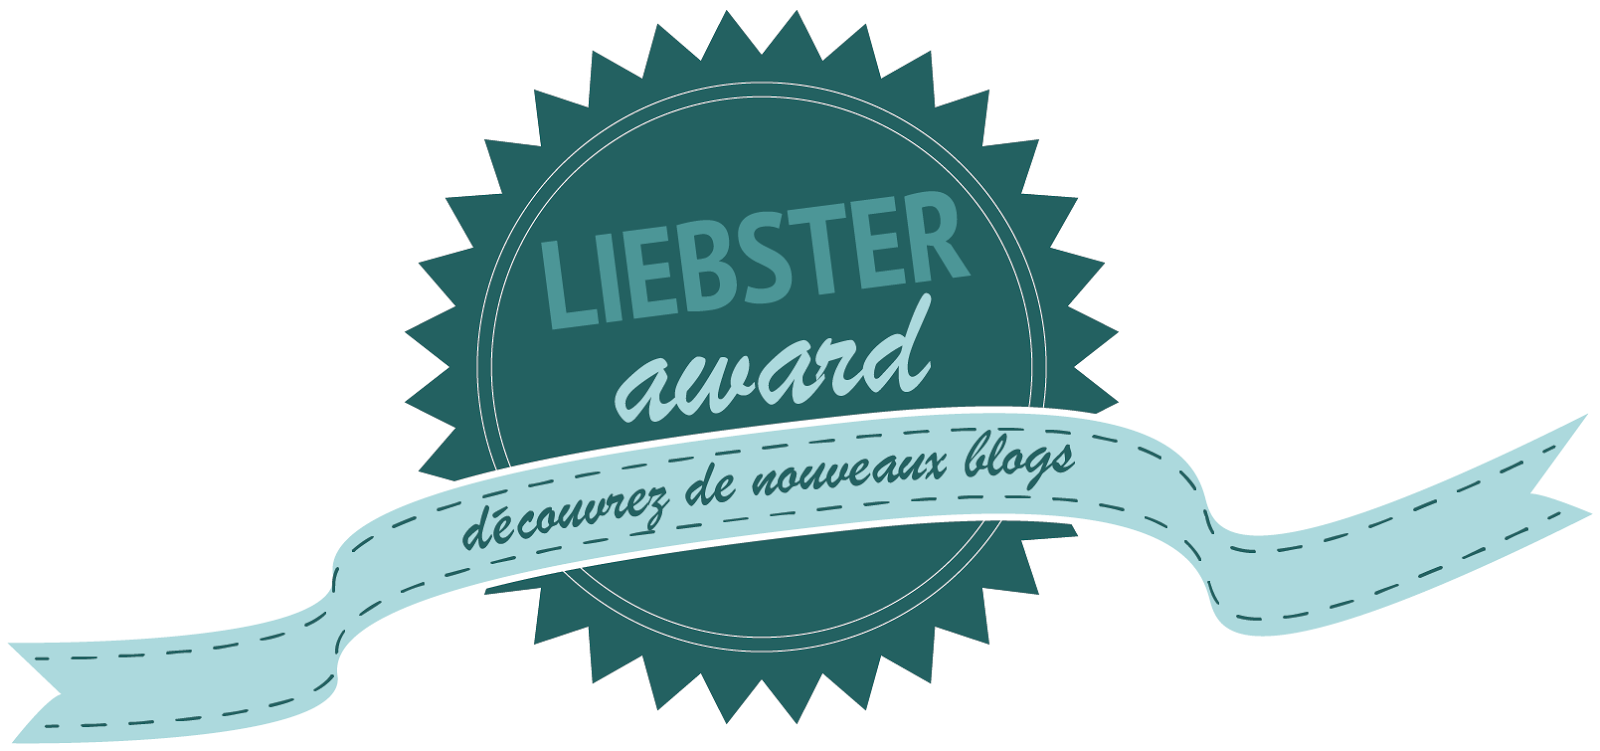 Liebster Awards Logo